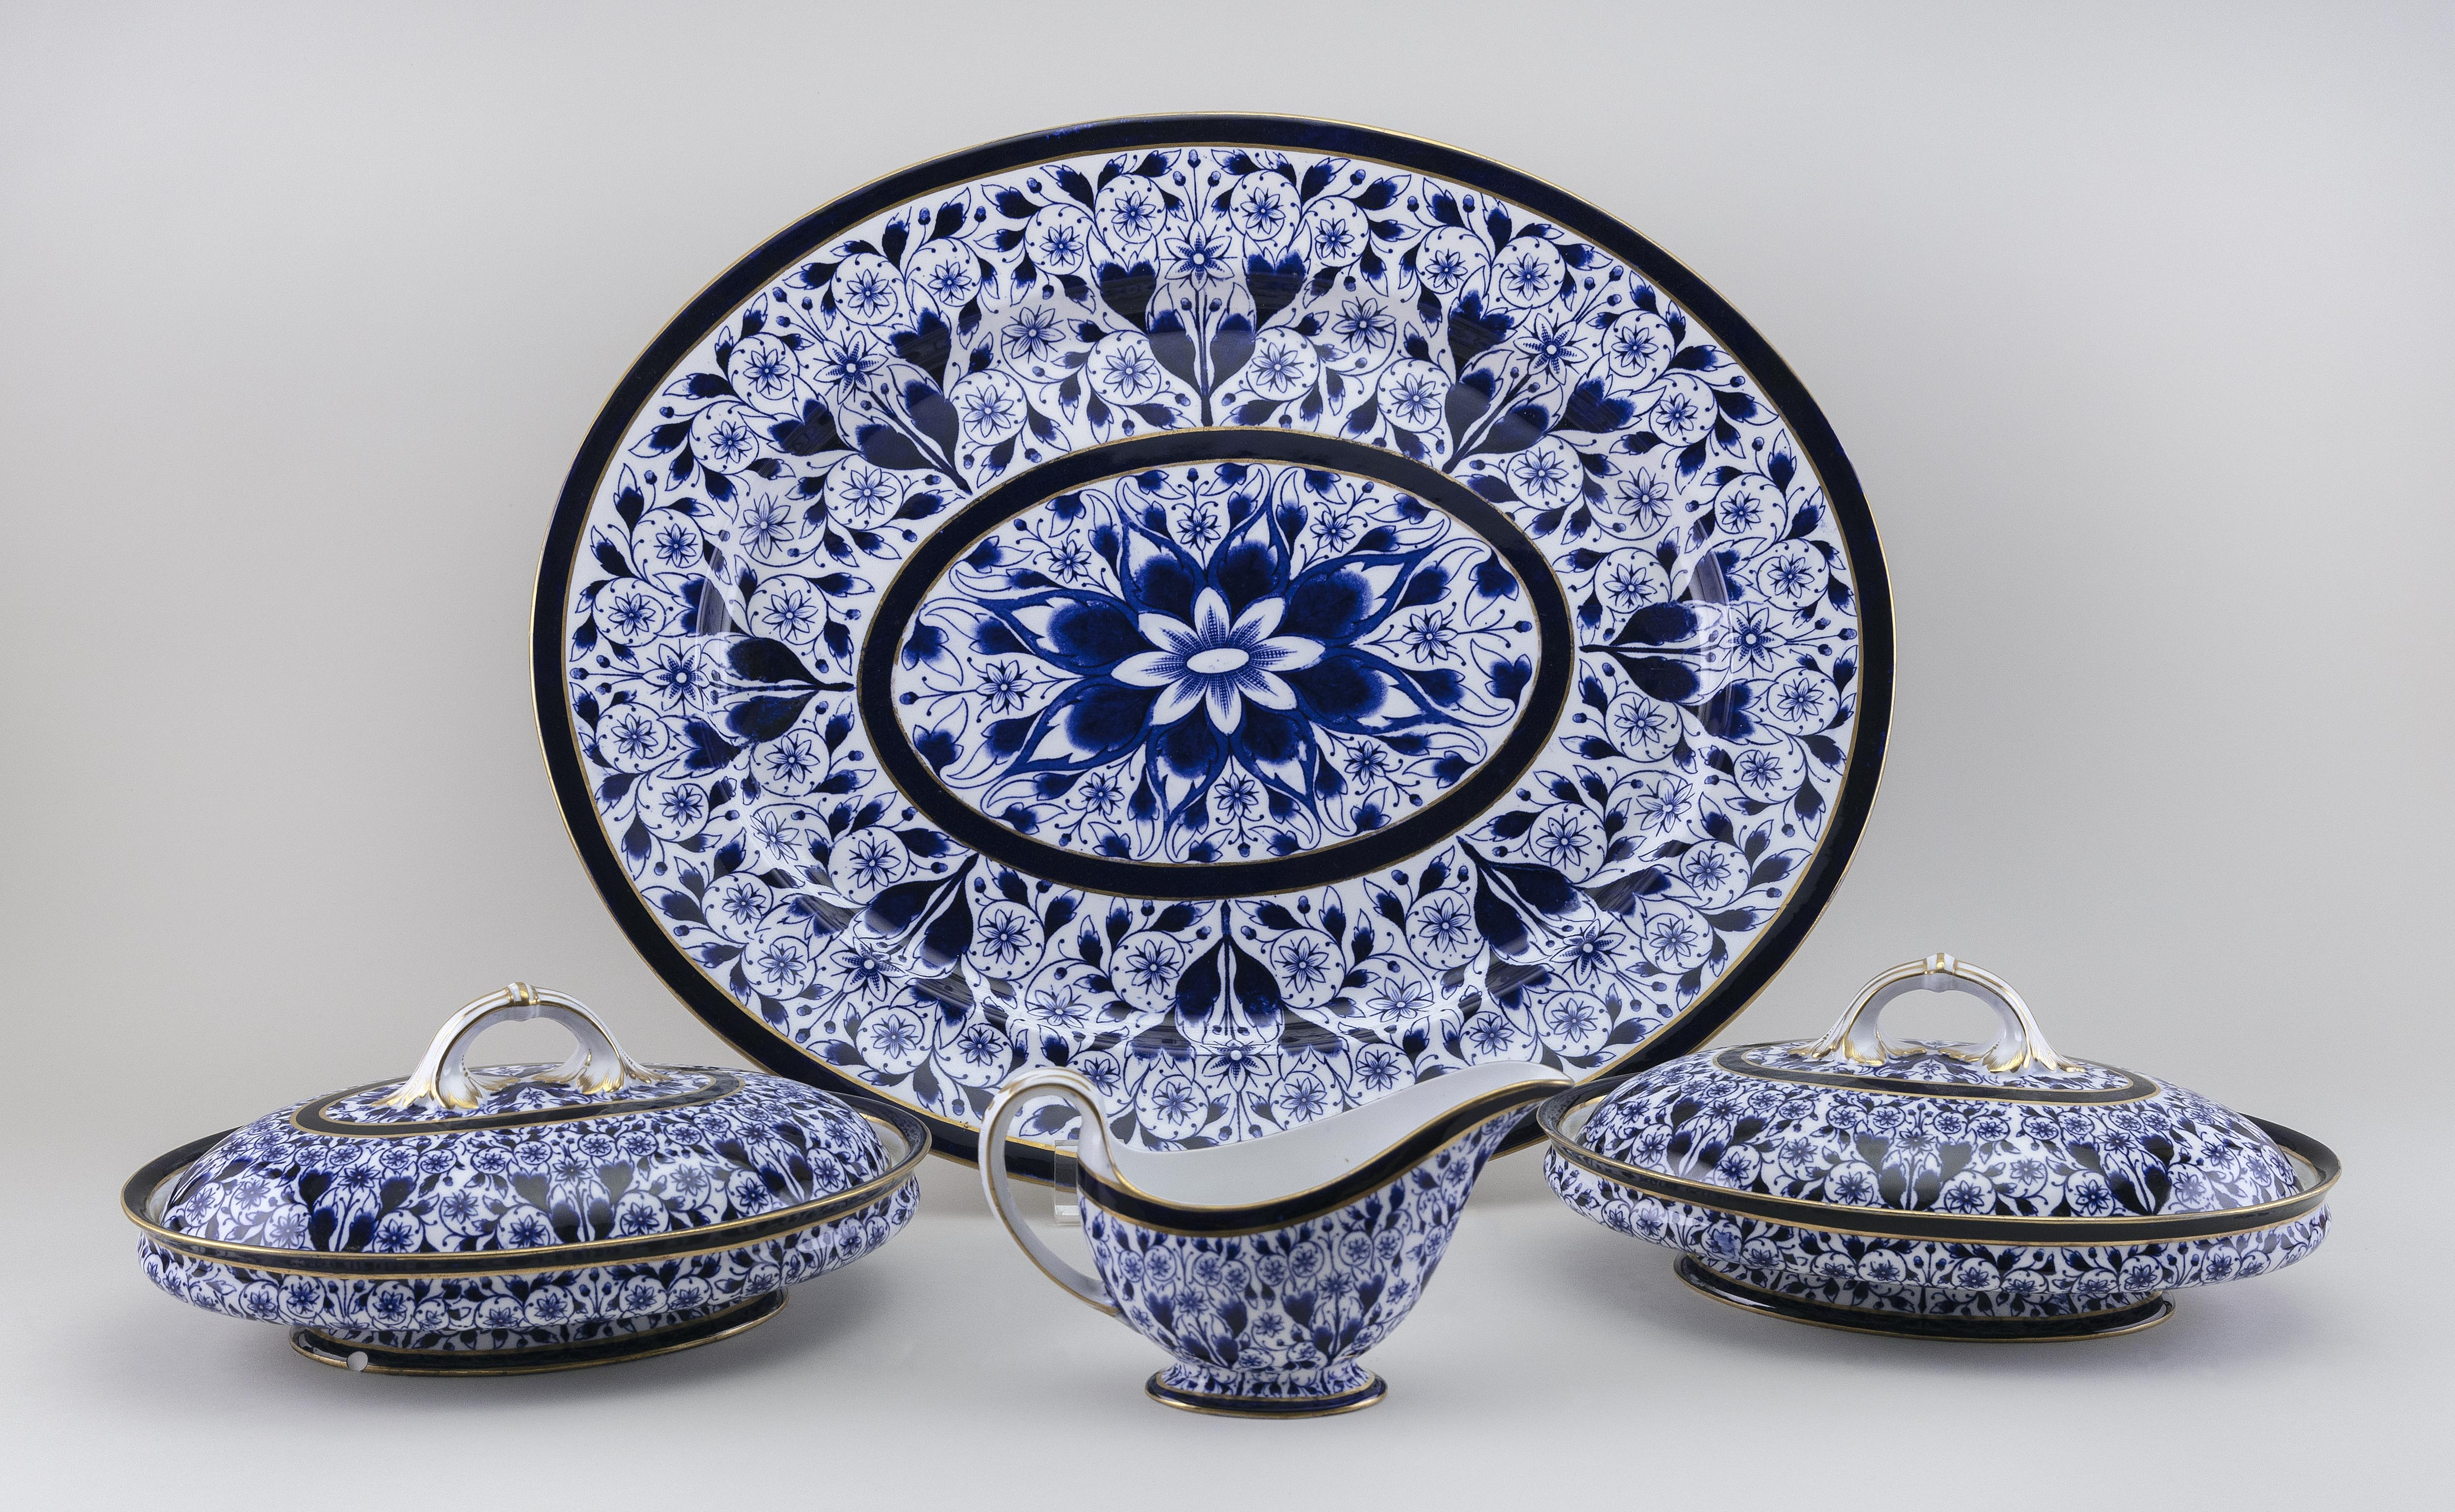 """FOUR PIECES OF ROYAL CROWN DERBY """"DERBY LILY"""" PORCELAIN SERVING PIECES England, Late 19th Century"""